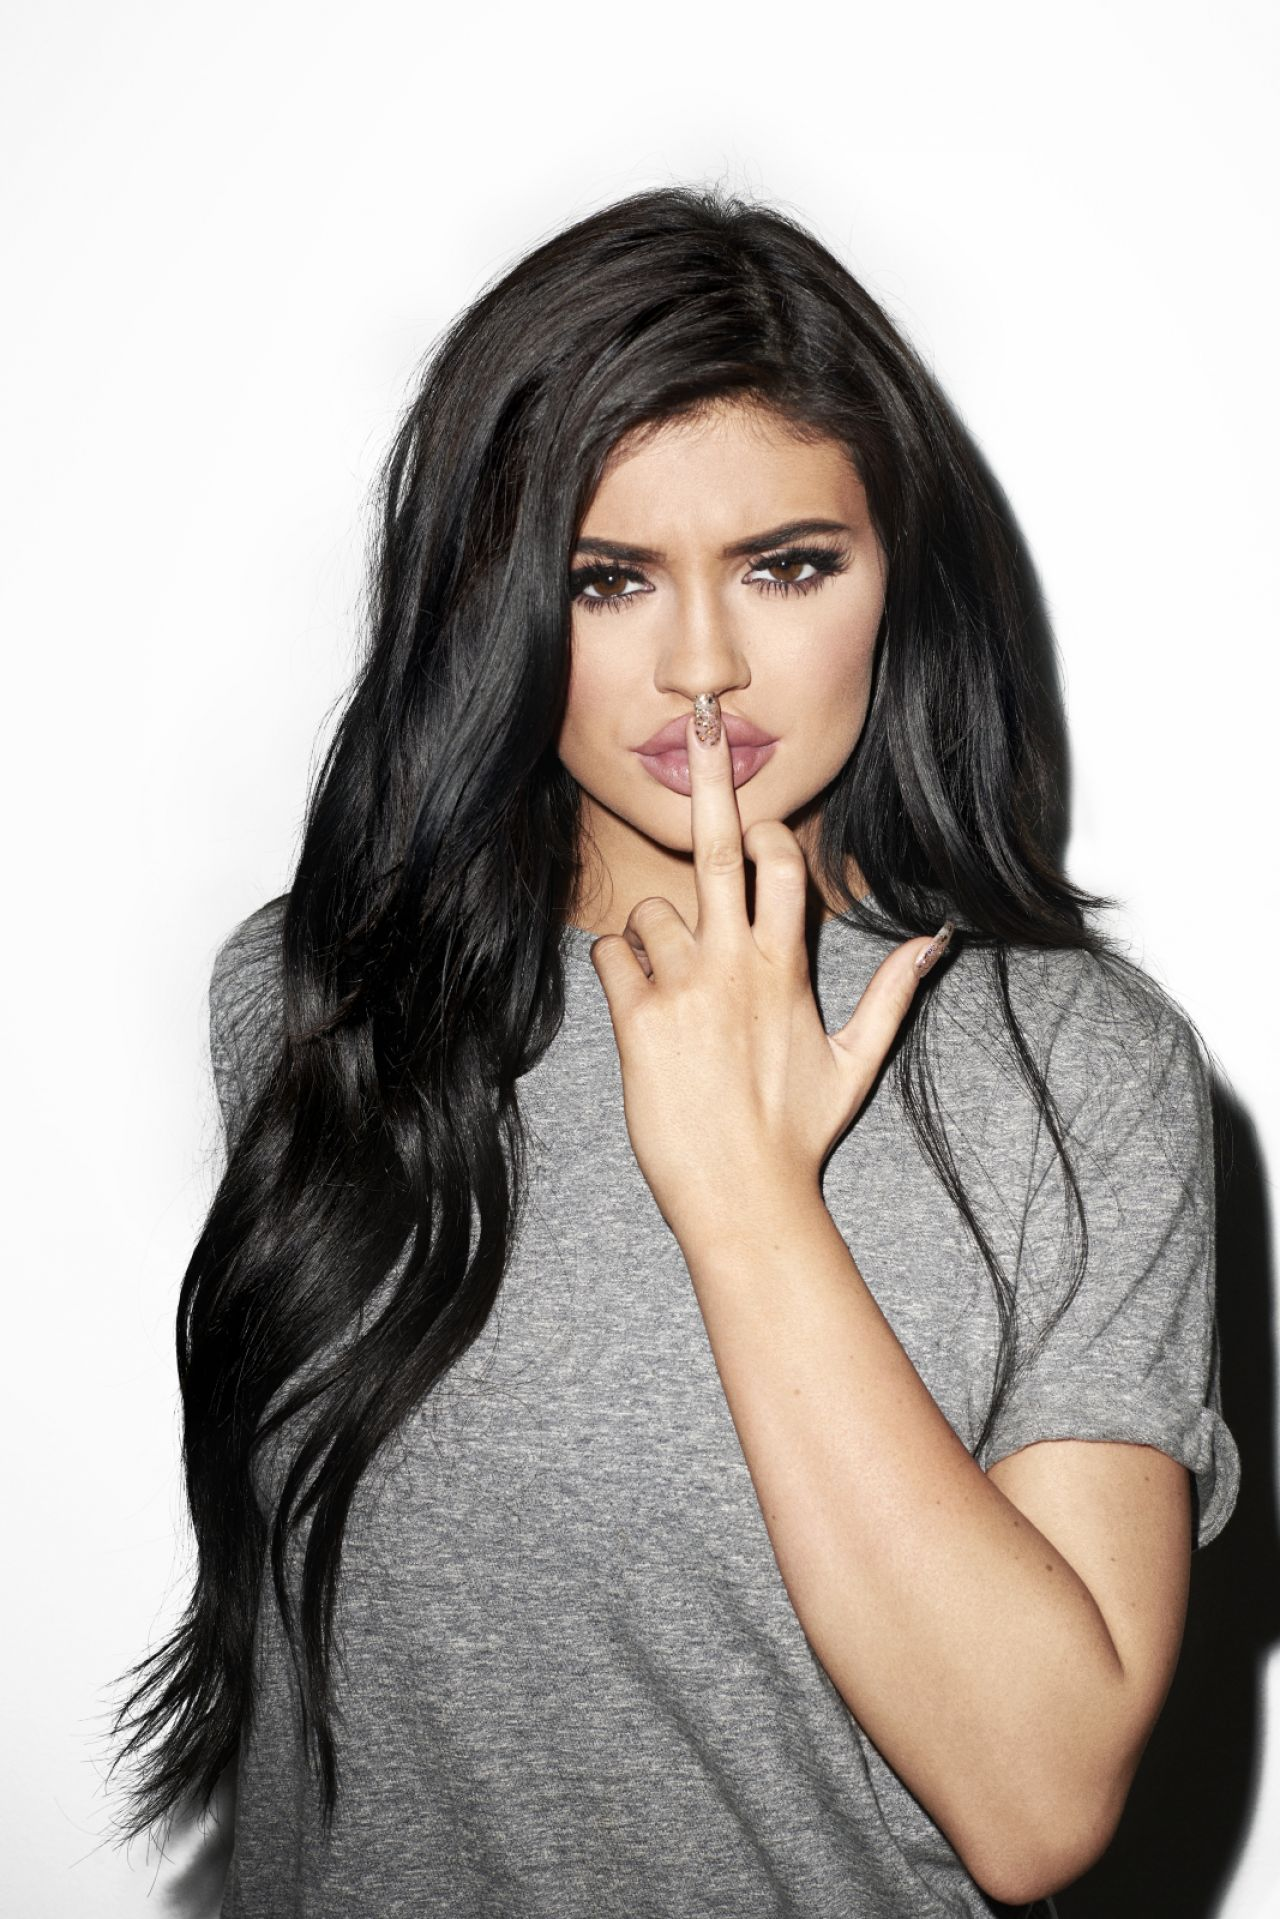 kylie jenner - photo #7